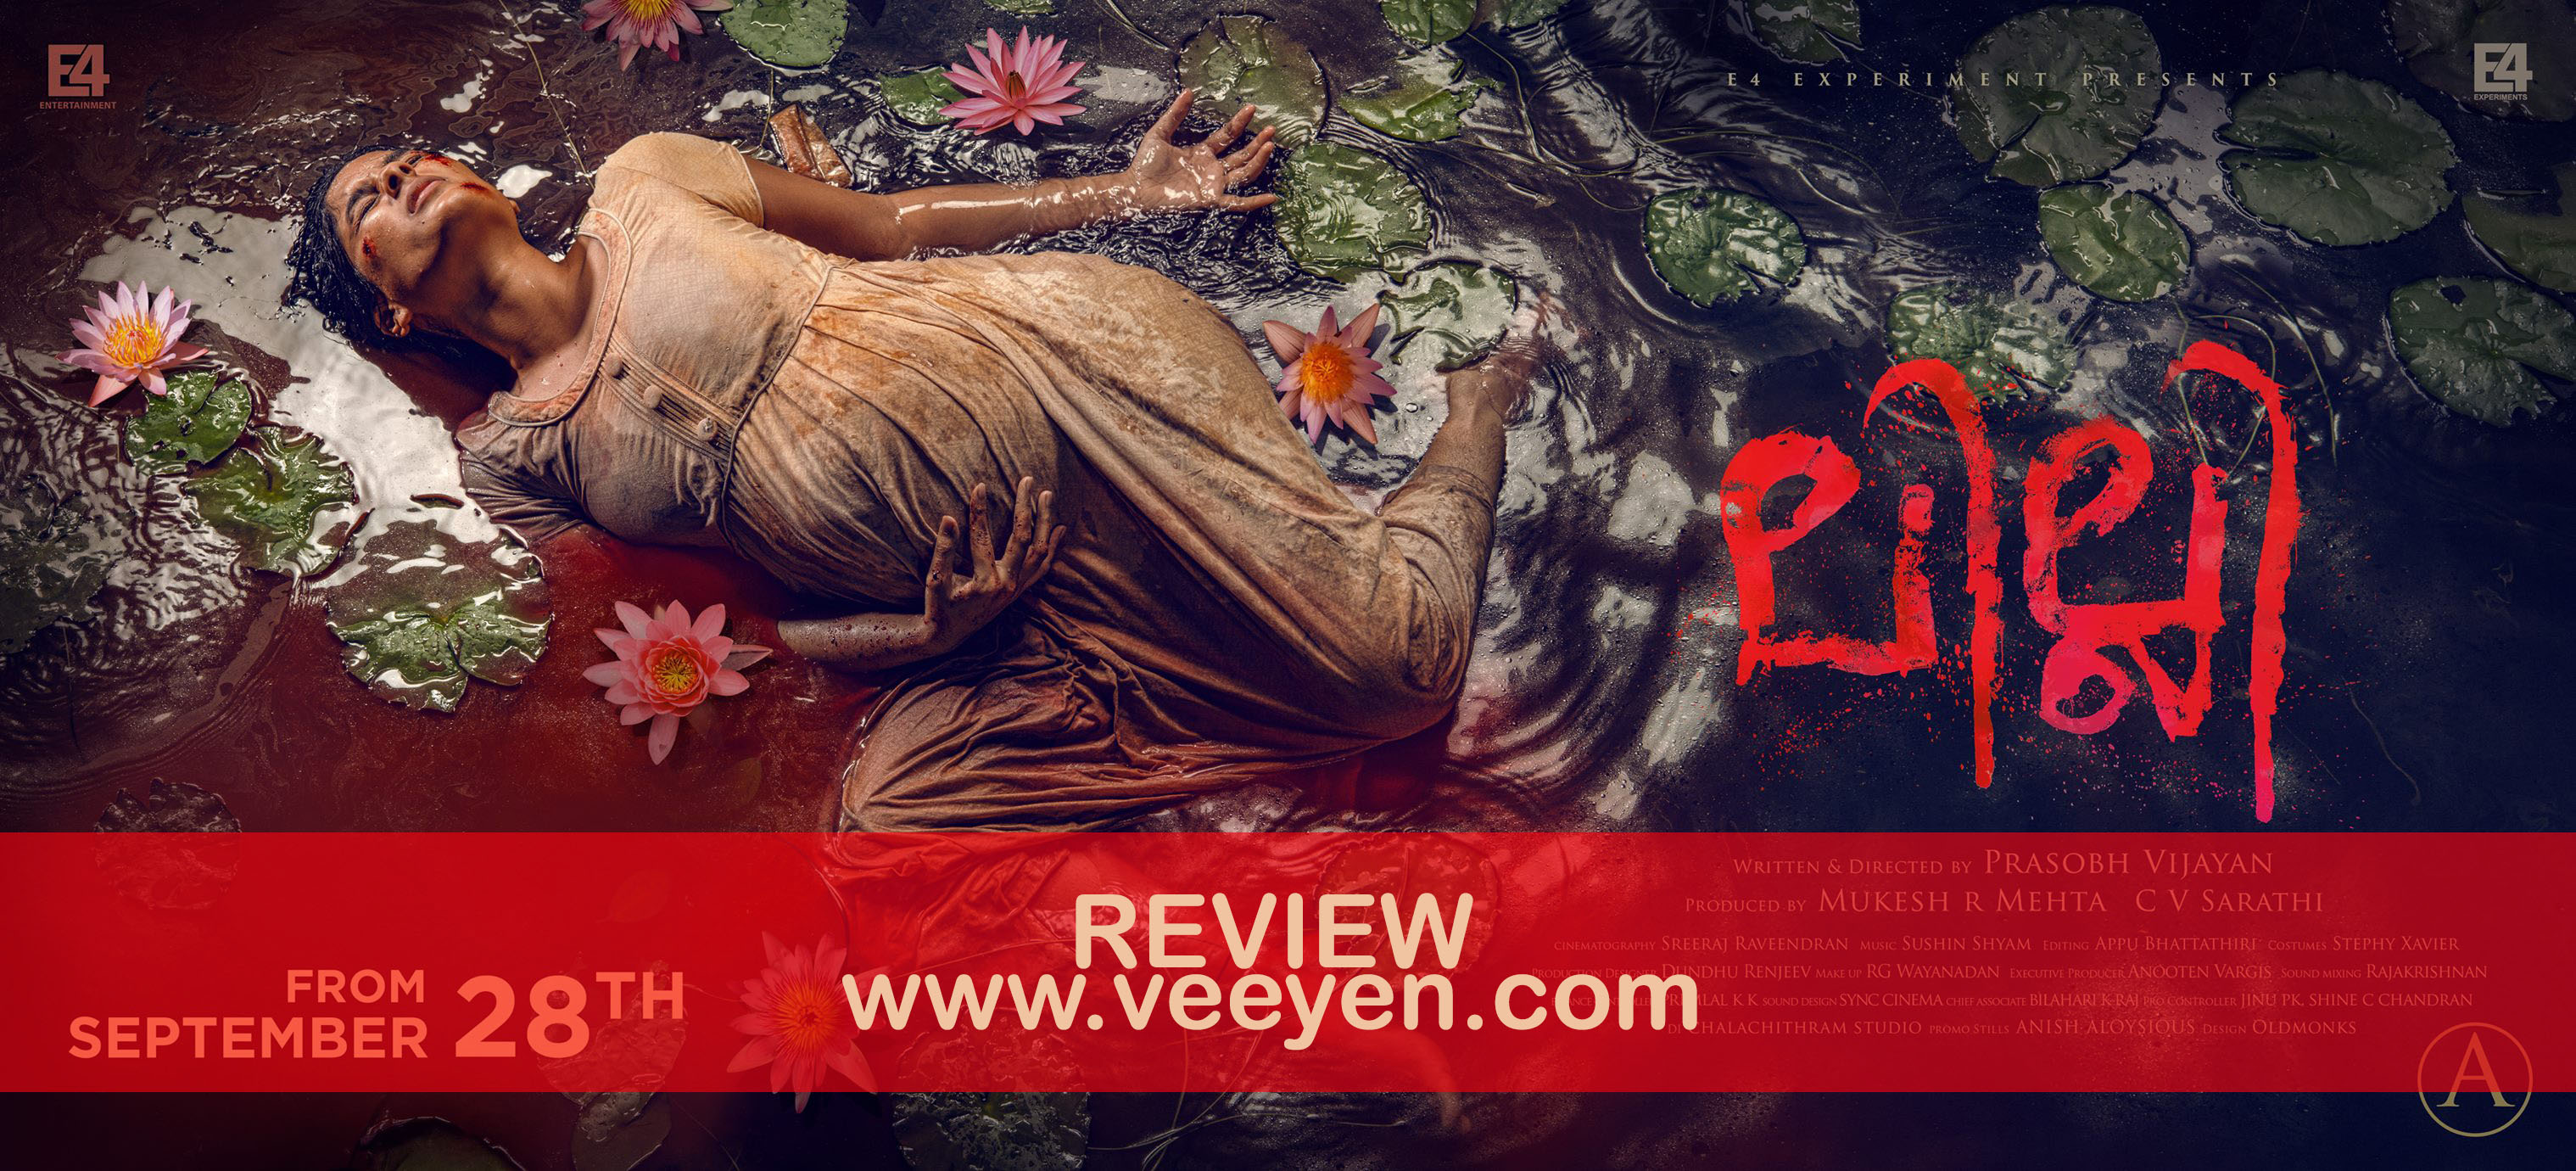 Lilli 2018 Malayalam Movie Review Veeyen Veeyen Unplugged